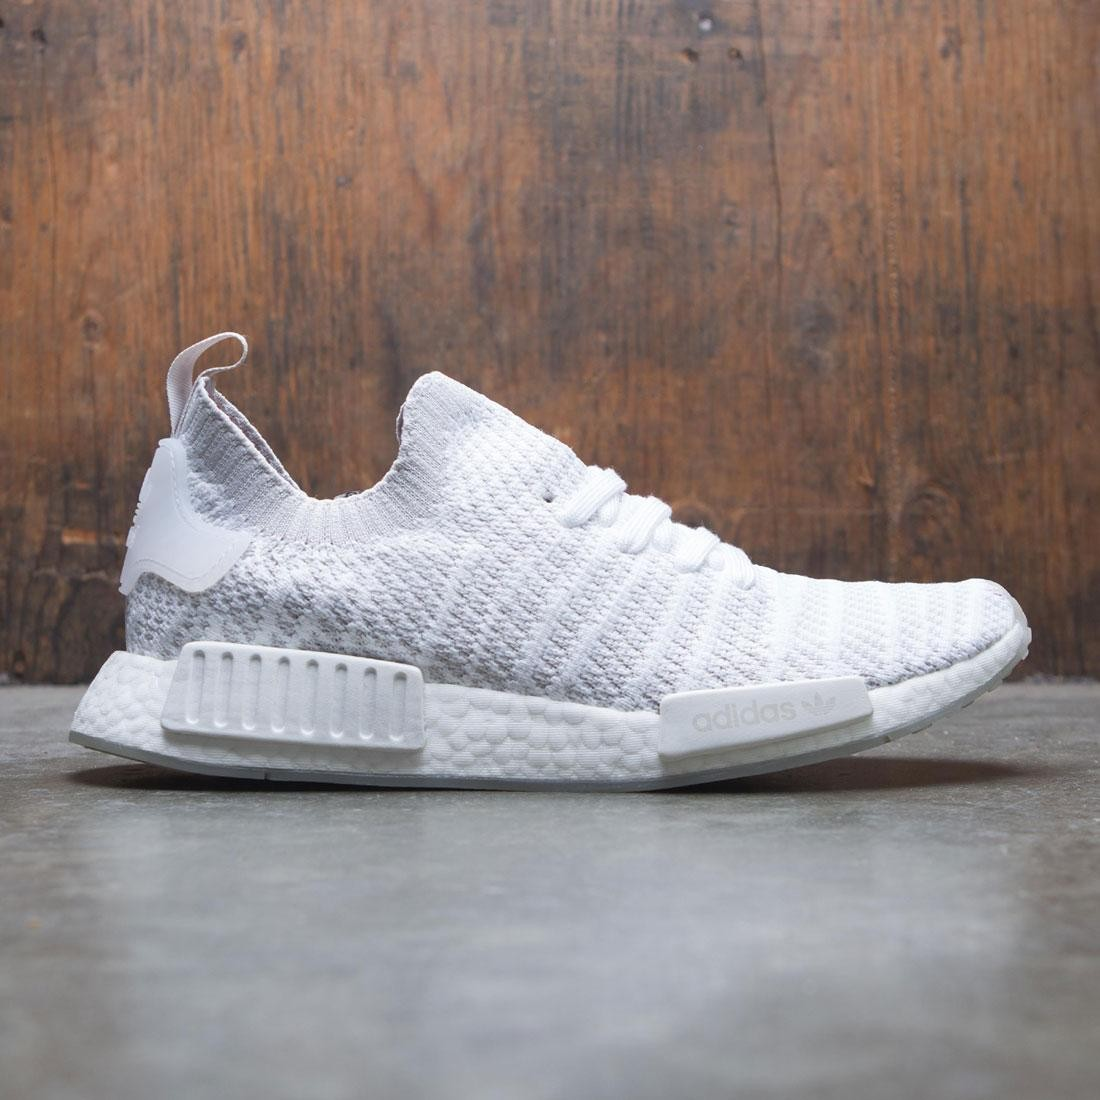 timeless design 31204 77eb6 Adidas Men NMD R1 STLT Primeknit (white / grey one / solar pink)